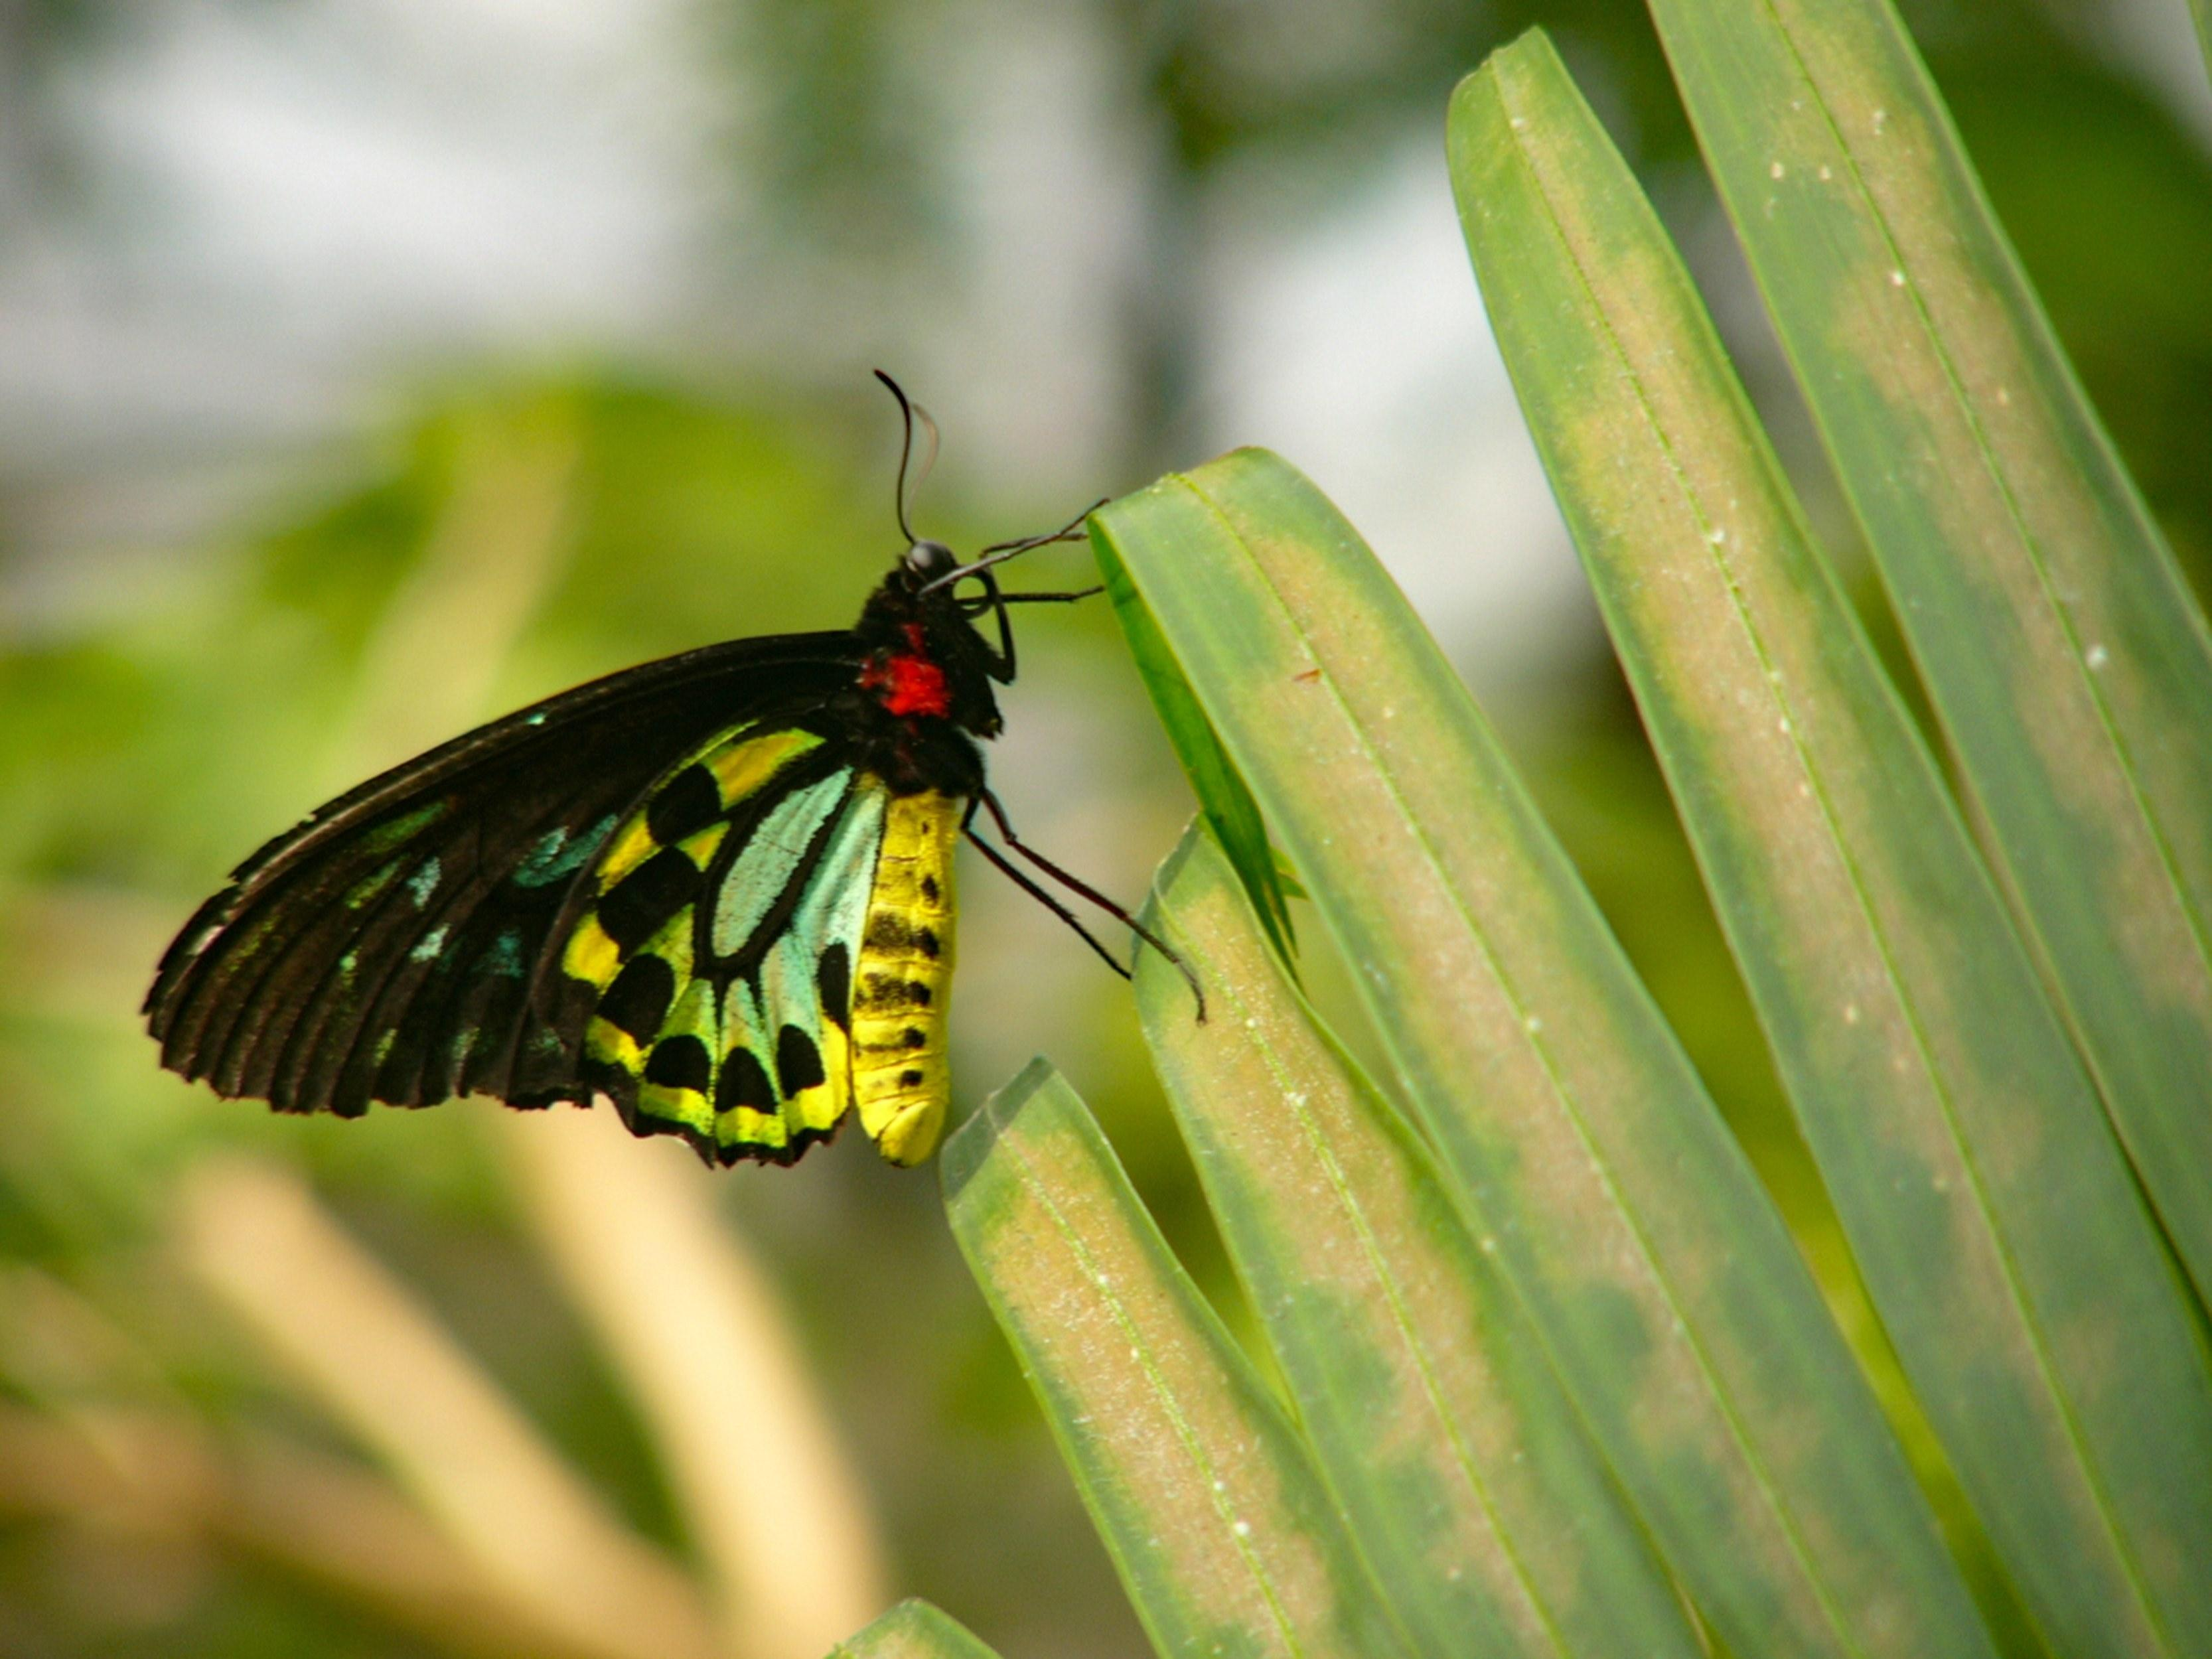 Conservatory Wallpaper - Brush-footed Butterfly , HD Wallpaper & Backgrounds